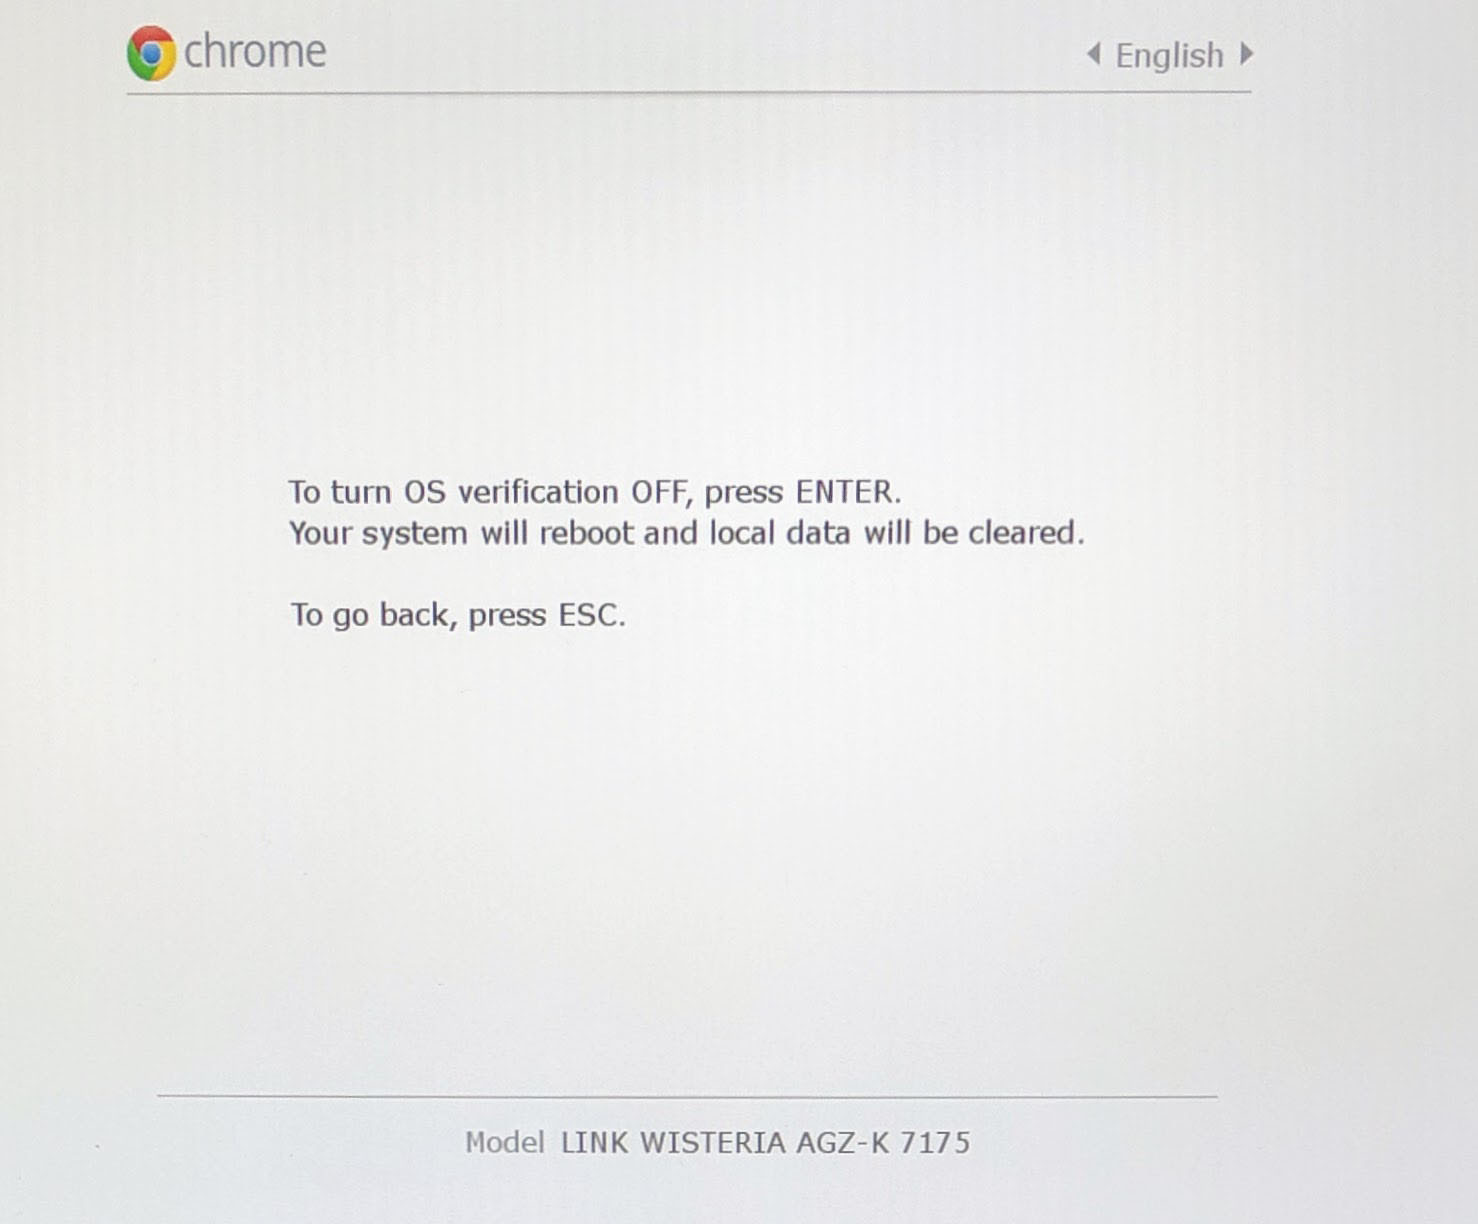 Google Chrome OS Turn OS Verification Off